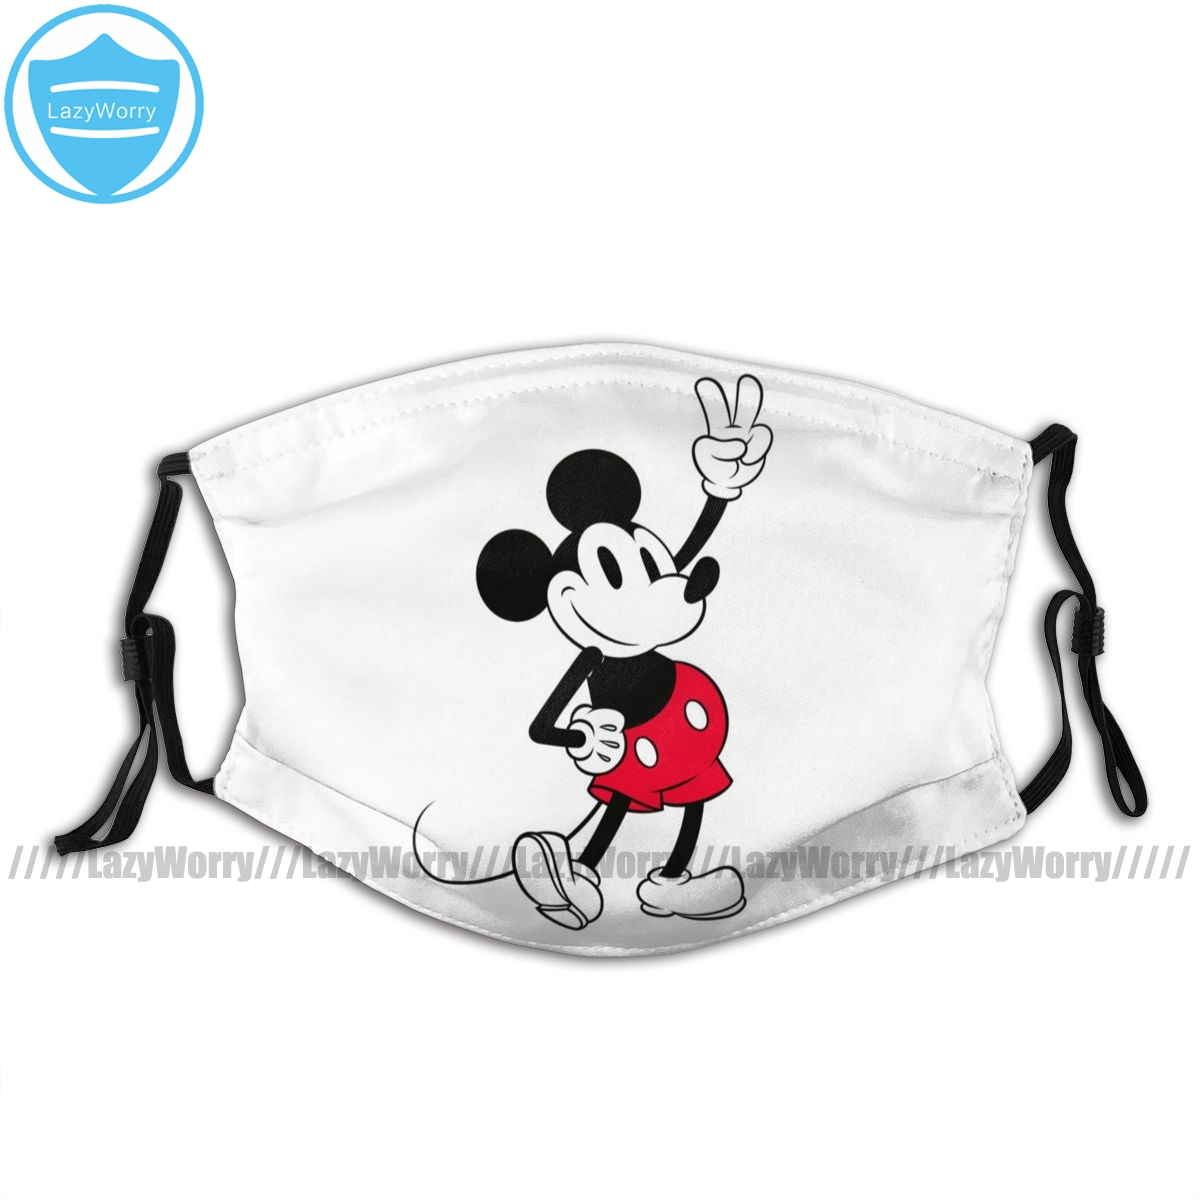 Mickey Mouse Mouth Face Mask Classic Mickey Mouse Cool Beyond Year Facial Mask Lovely Fashion Mask